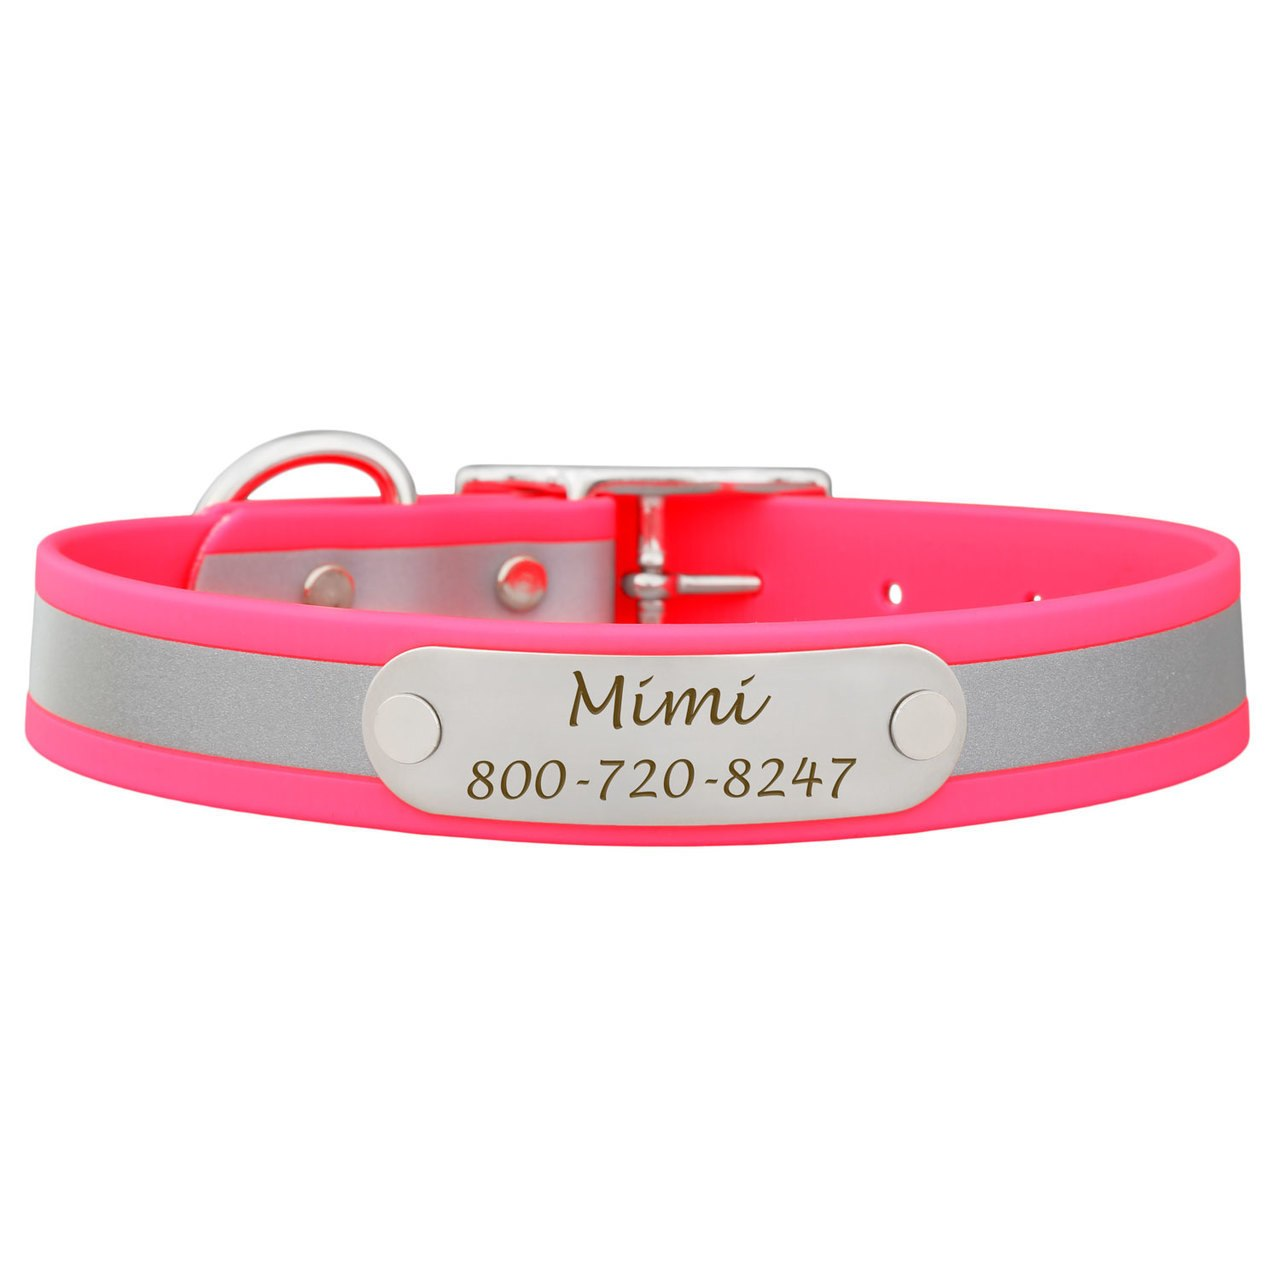 Reflective Waterproof Soft Grip Dog Collar with Nameplate Pink